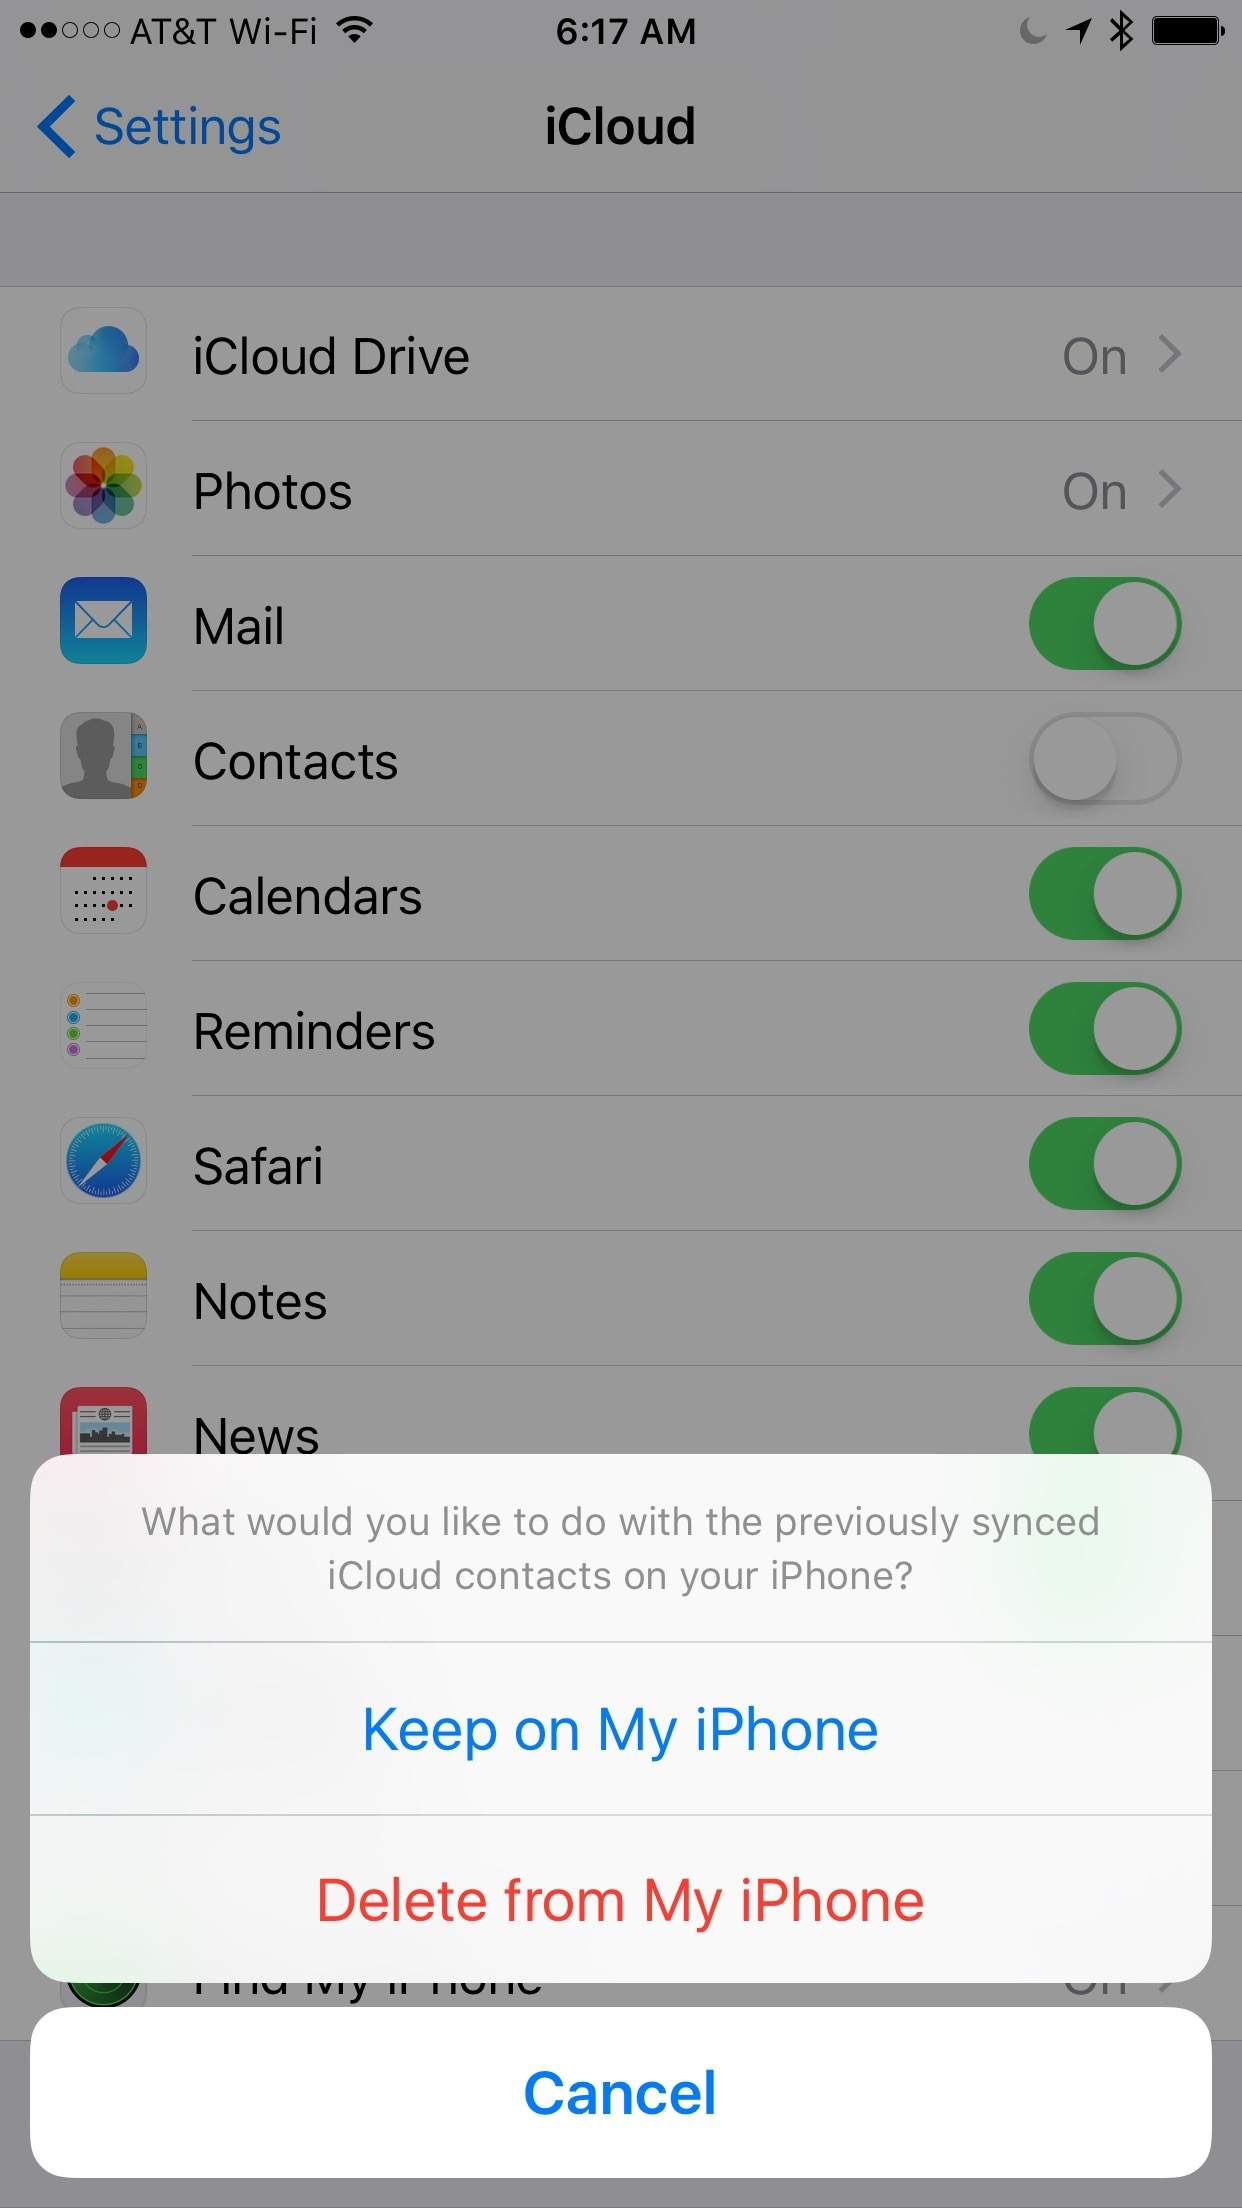 How to Move Contacts from On My iPhone to iCloud